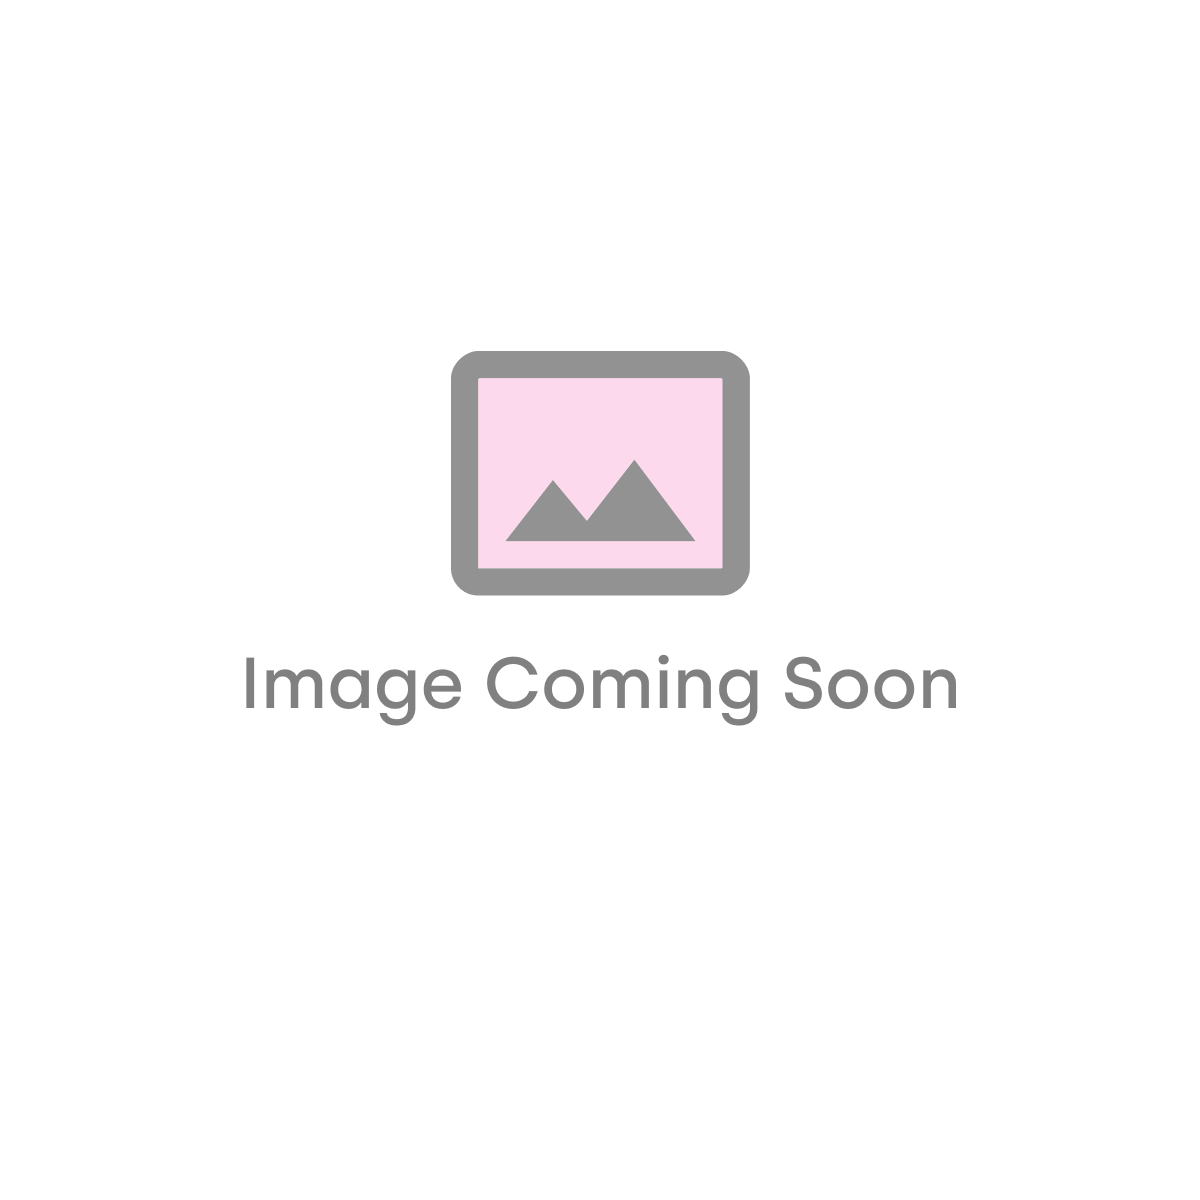 Aquadart 10 1100mm Wetroom Panel - Clear Glass (18673)